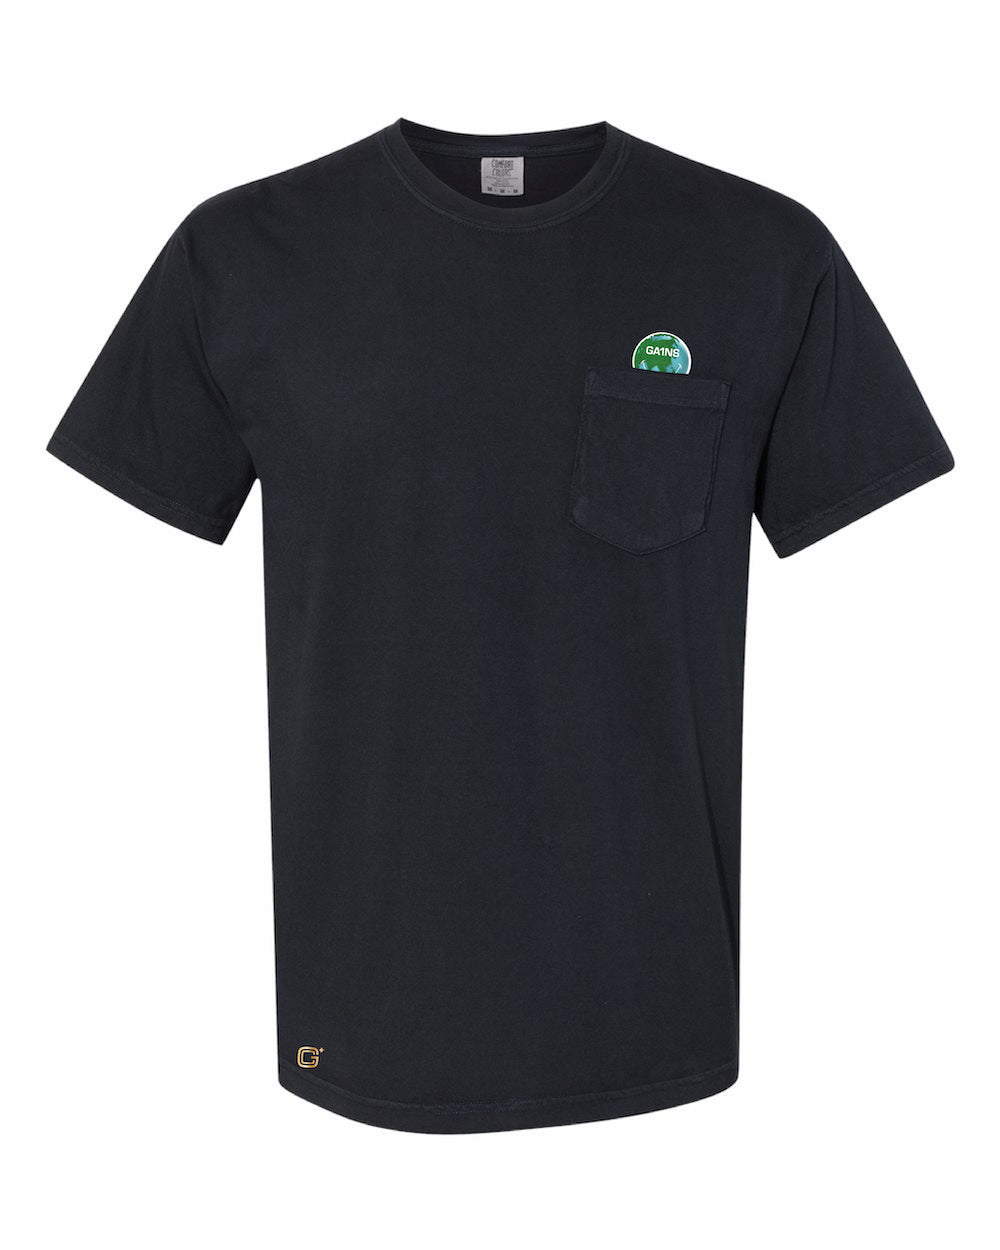 Earth GA1NS Pocket Tee